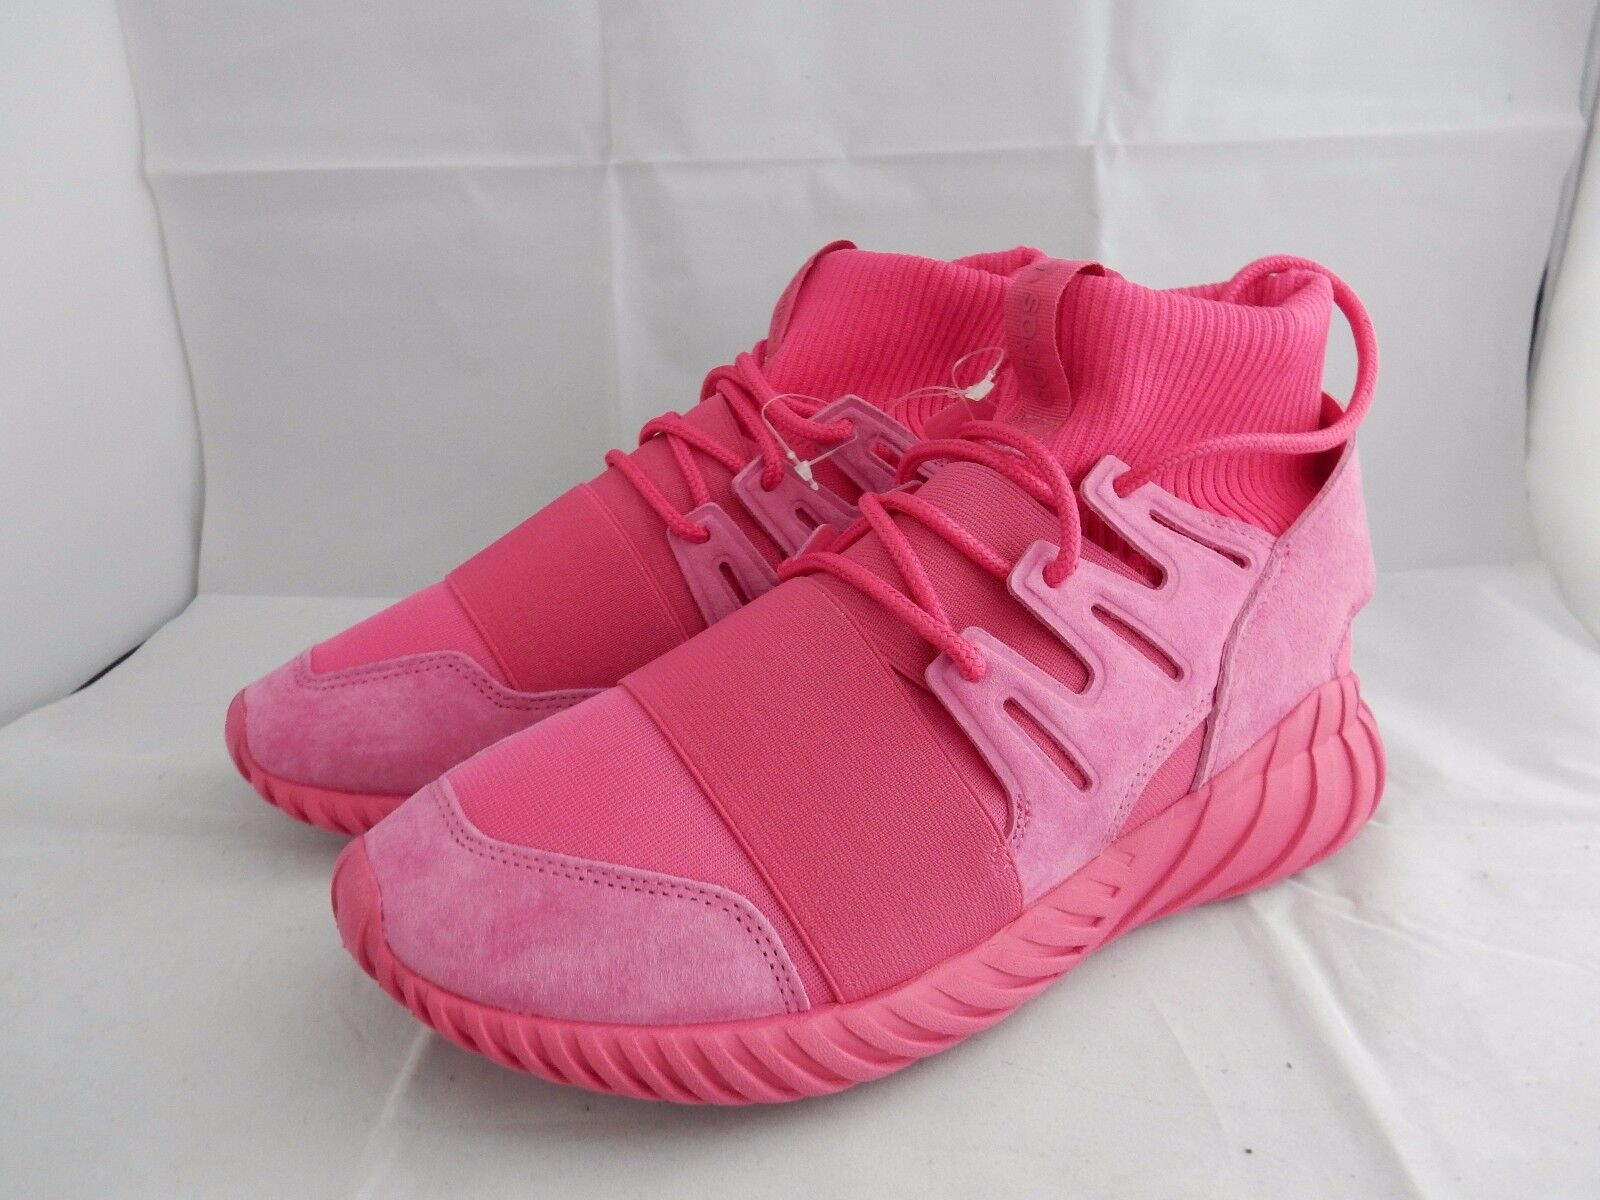 ADIDAS TUBULAR DOOM Rosa BRAND NEW TRAINERS UK 8.5 US 9 EU 42.1 3